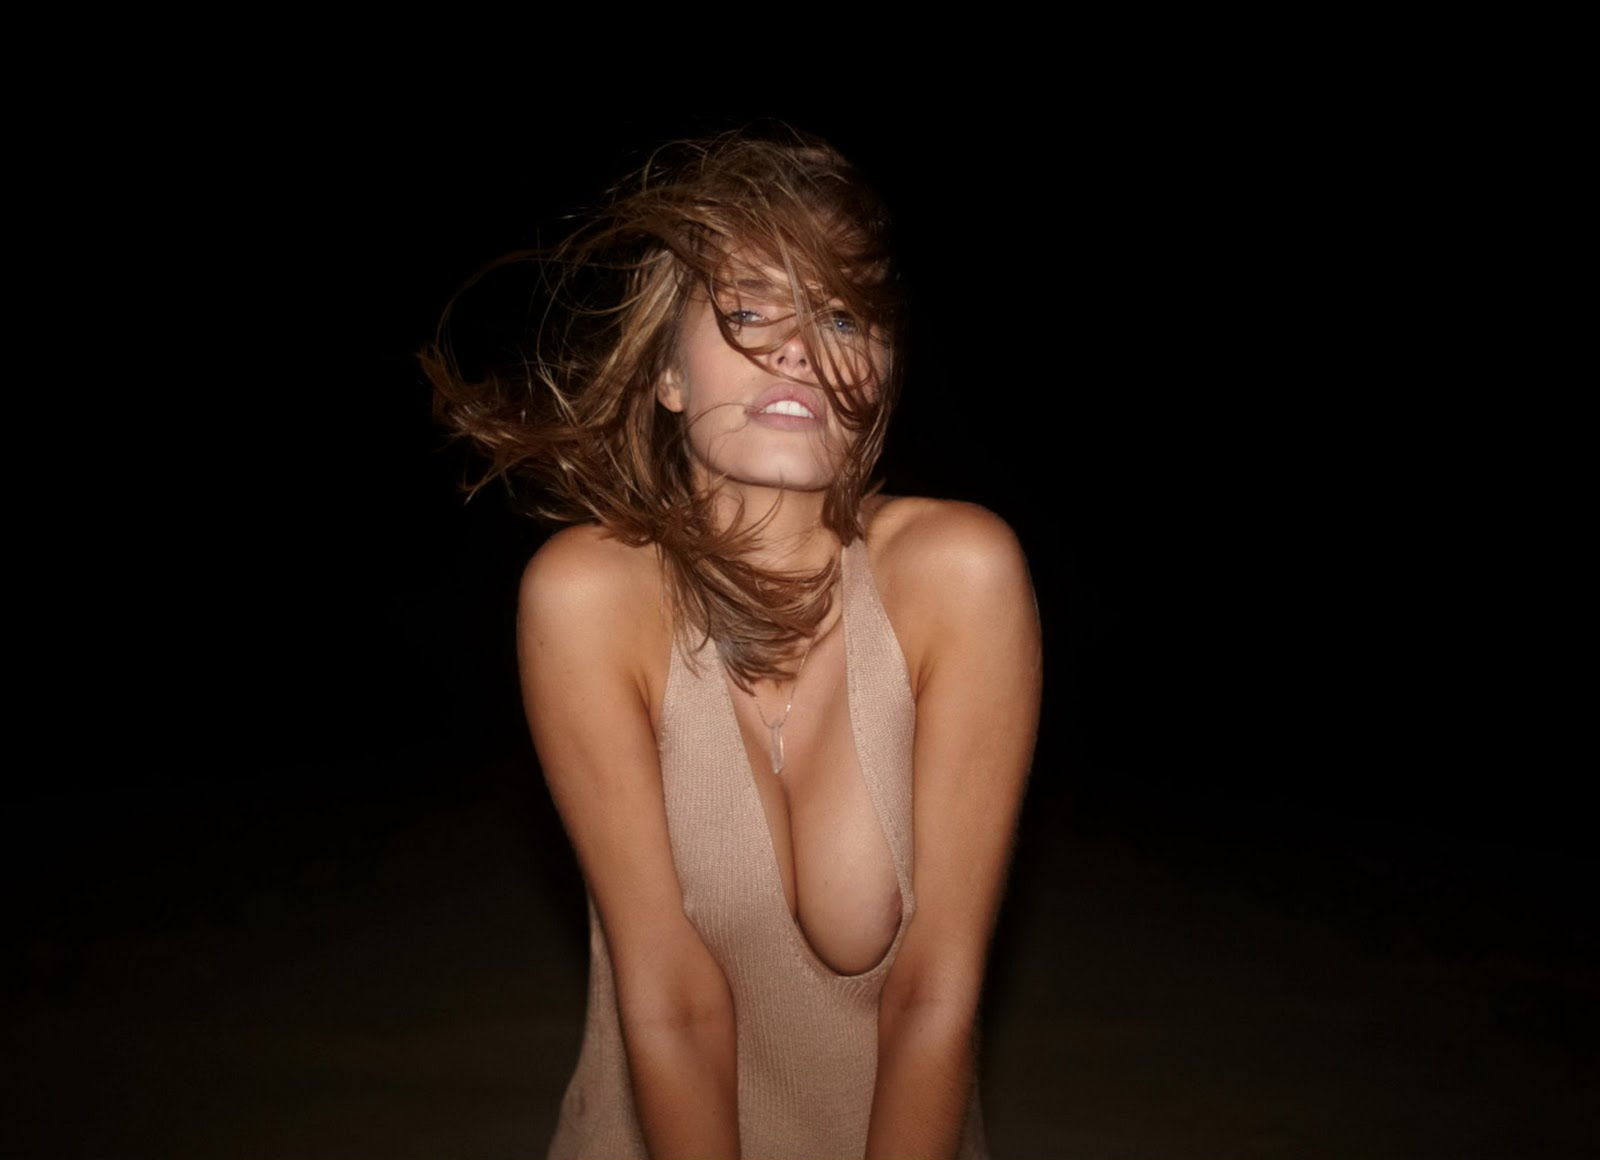 Beach Photoshoot Nude